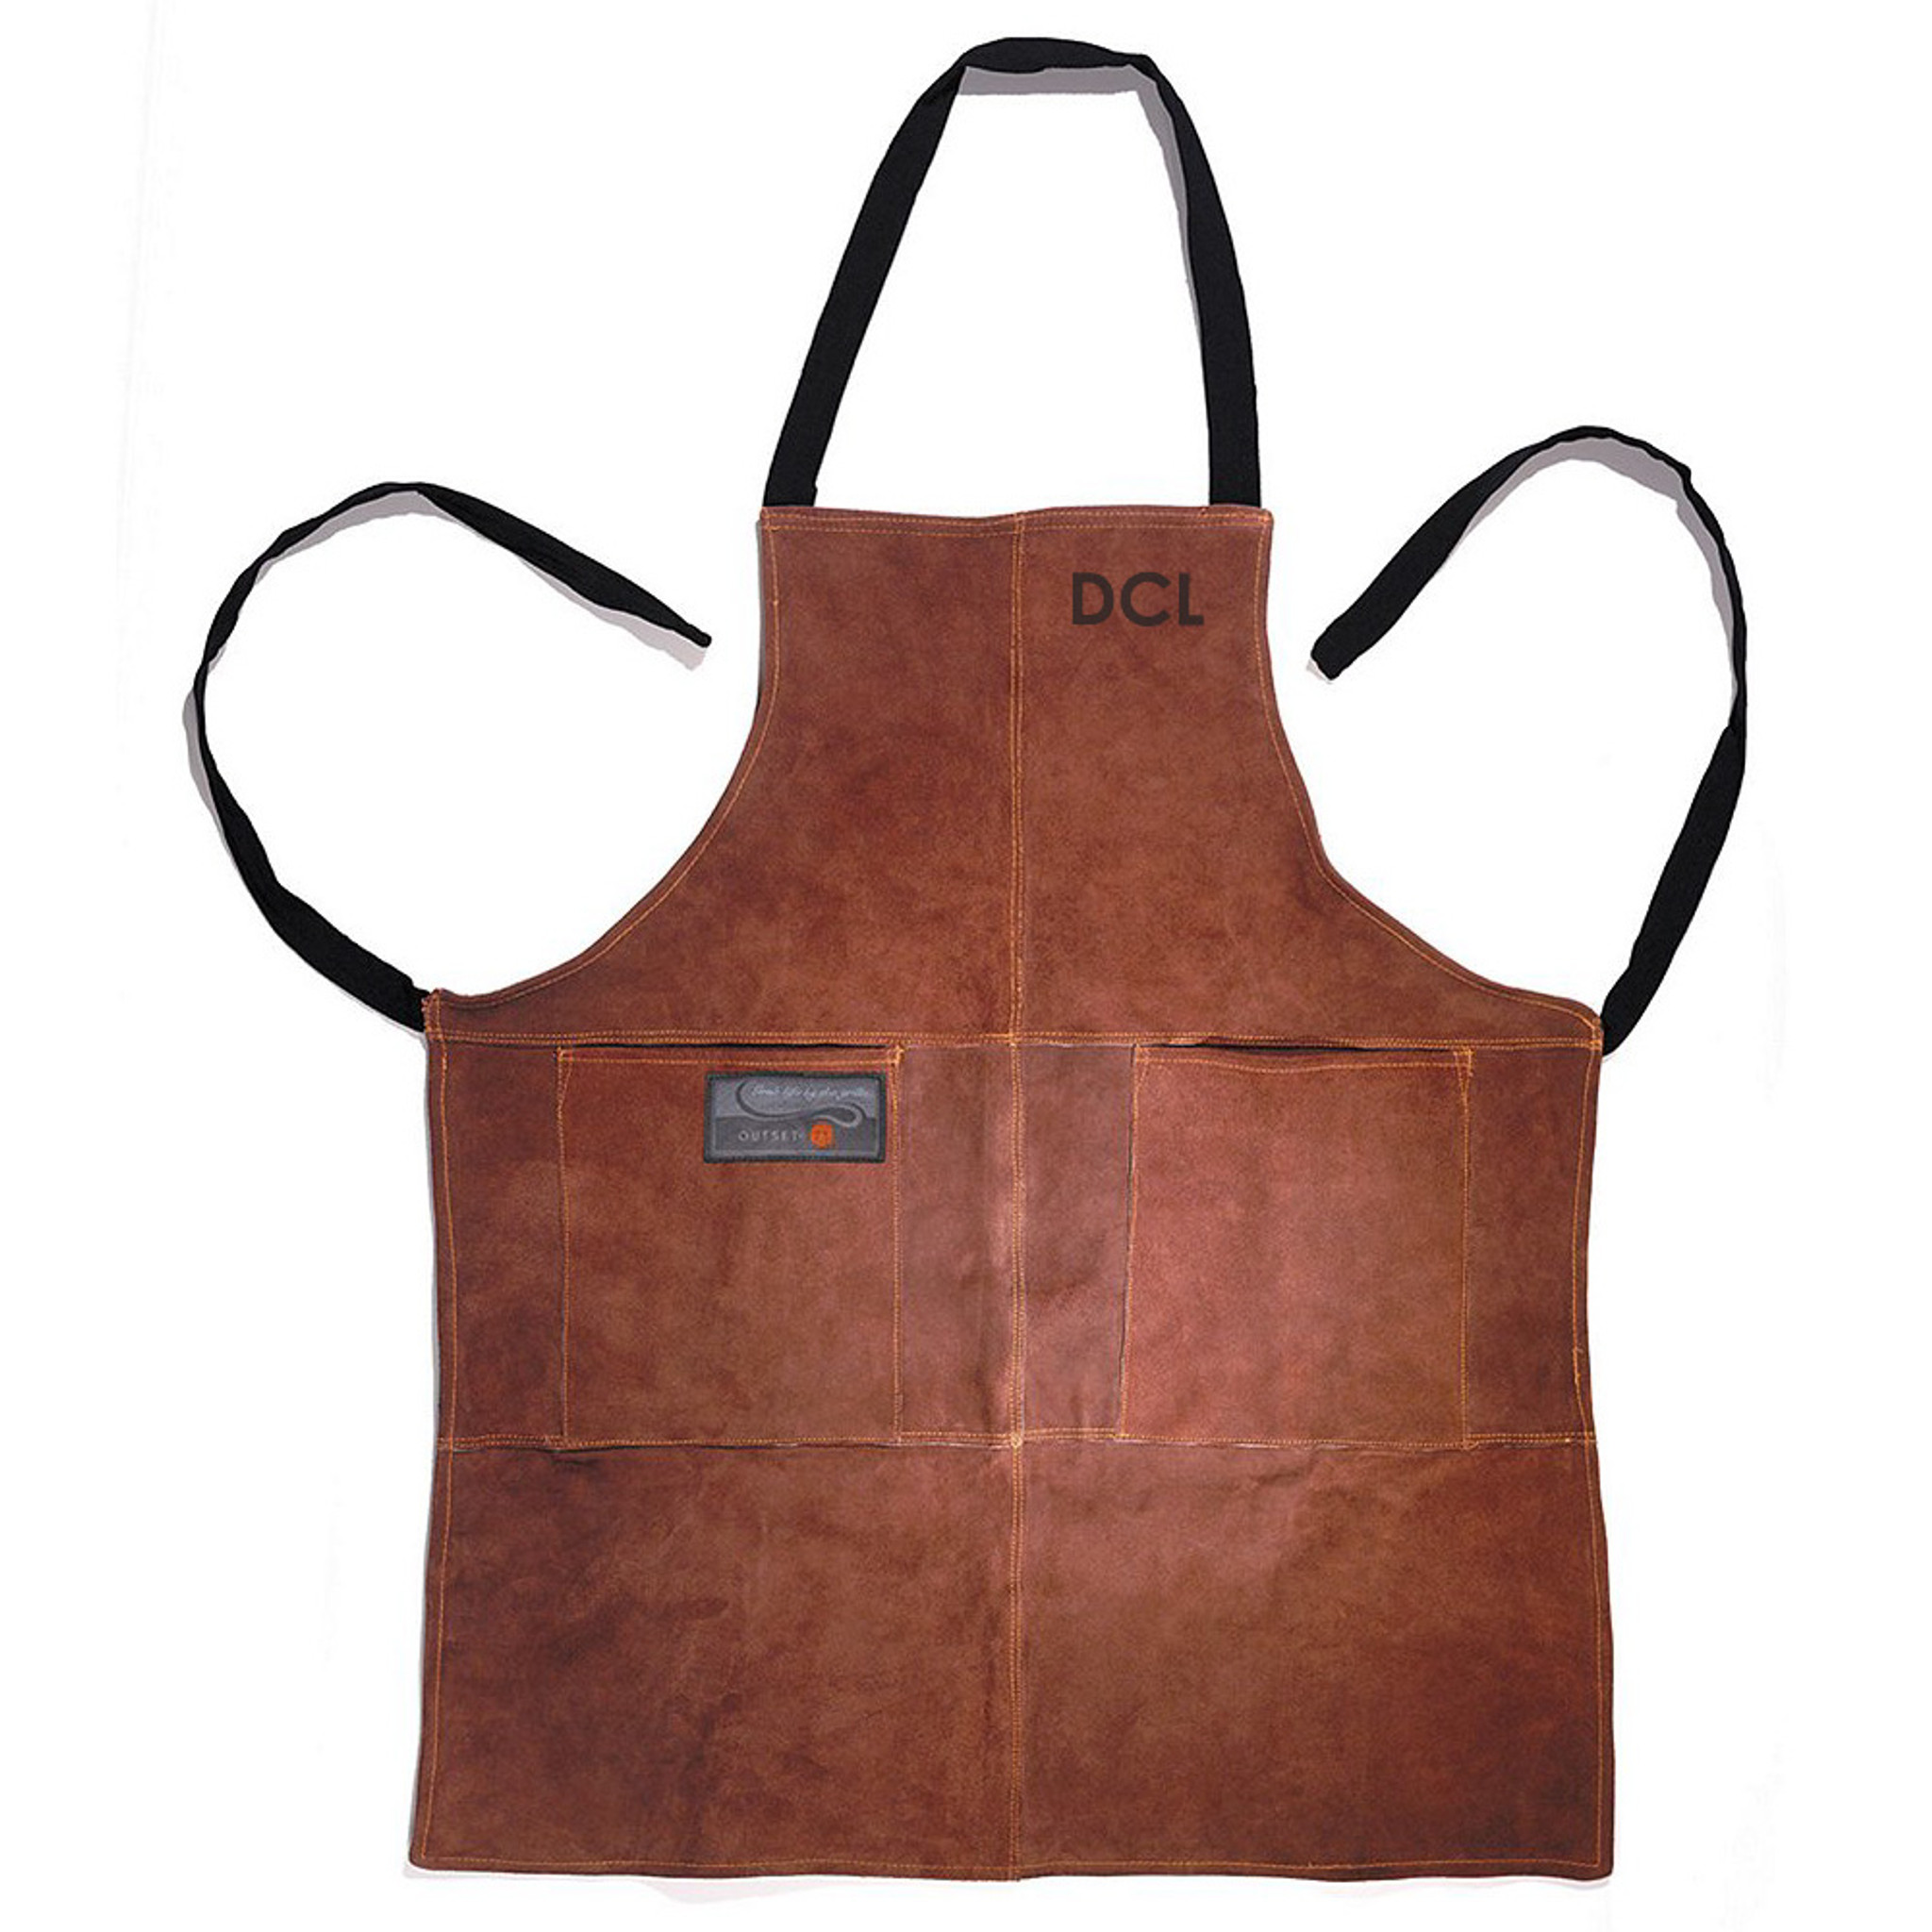 Personalized Leather Grilling Apron | BBQ FANS